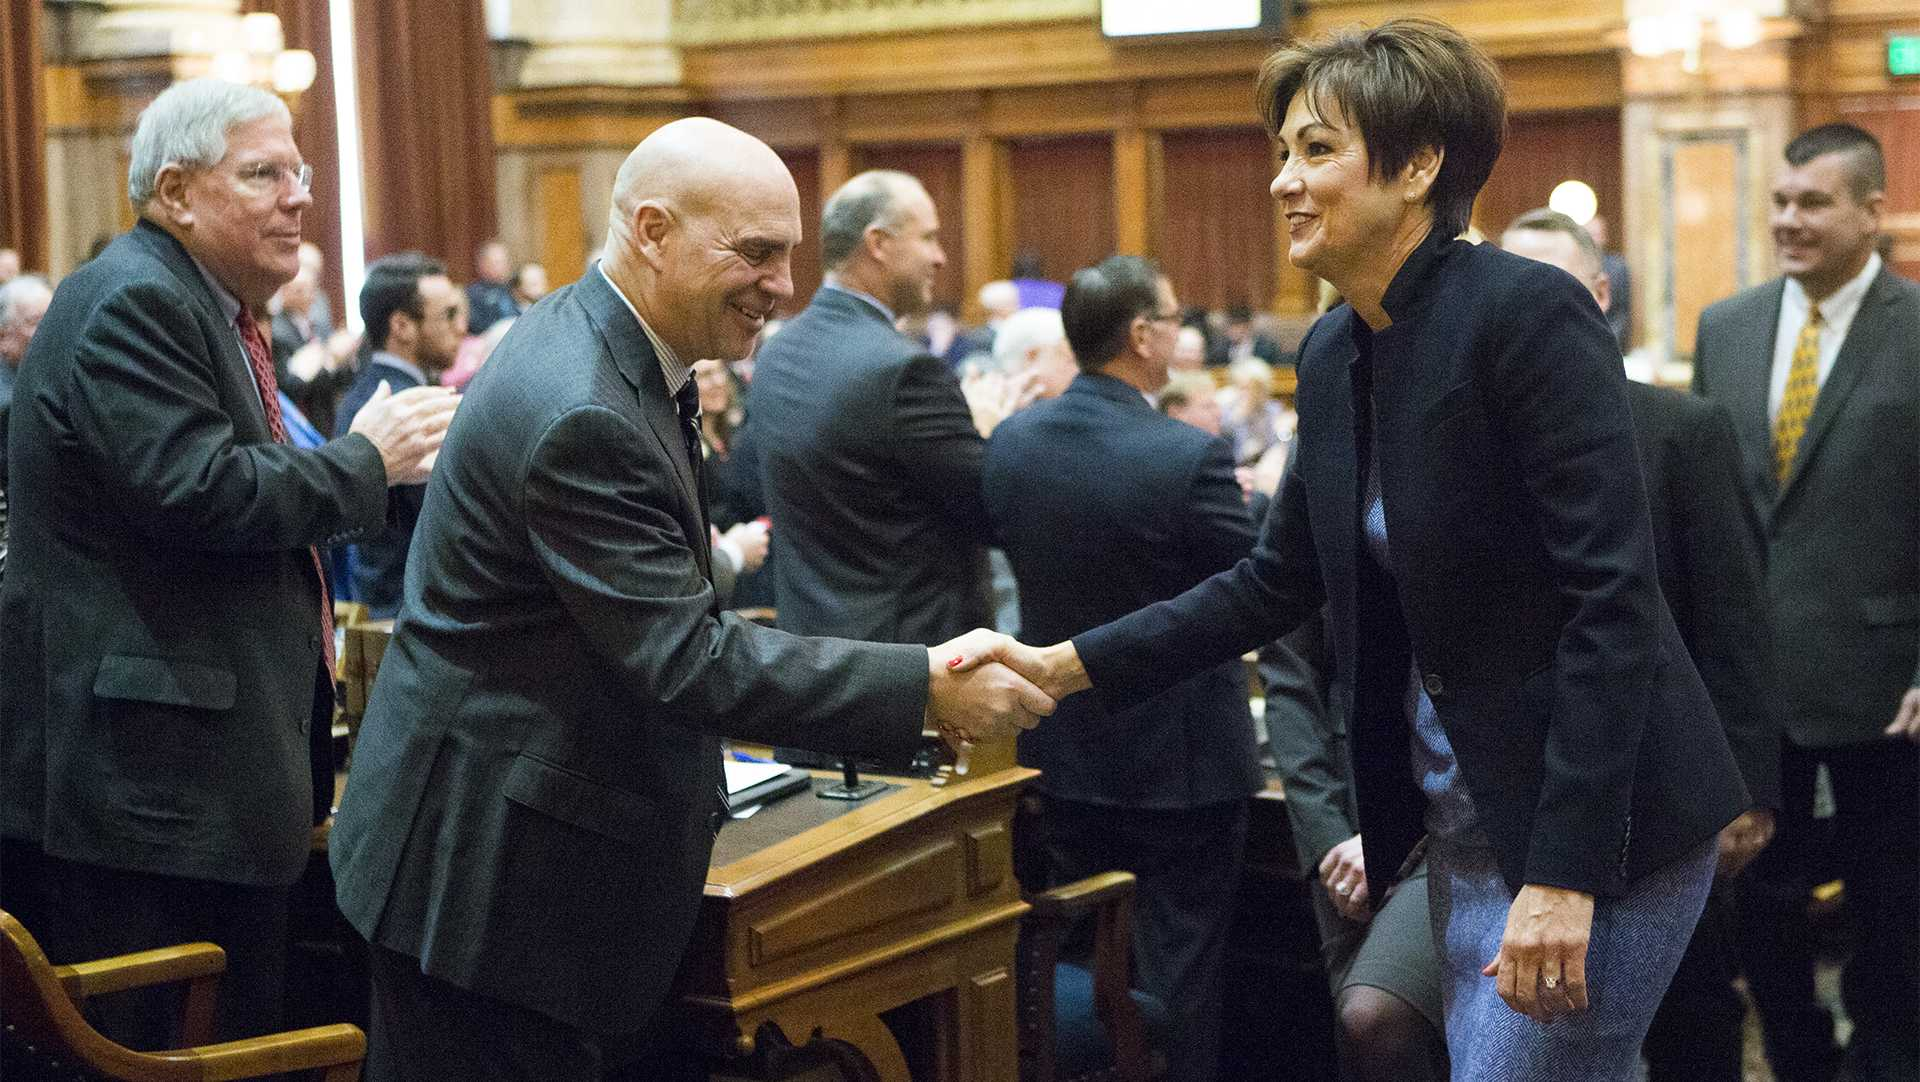 Iowa Gov. Kim Reynolds shakes hands with after Rep. Dave Jacoby, D-Coralville, while Sen. Robert E. Dvorsky, D-Coralville, claps after her first Condition of the State address in the Iowa State Capitol in Des Moines on Tuesday, Jan. 9, 2018. Reynolds took over the governor office in May of 2017. (Joseph Cress/The Daily Iowan)